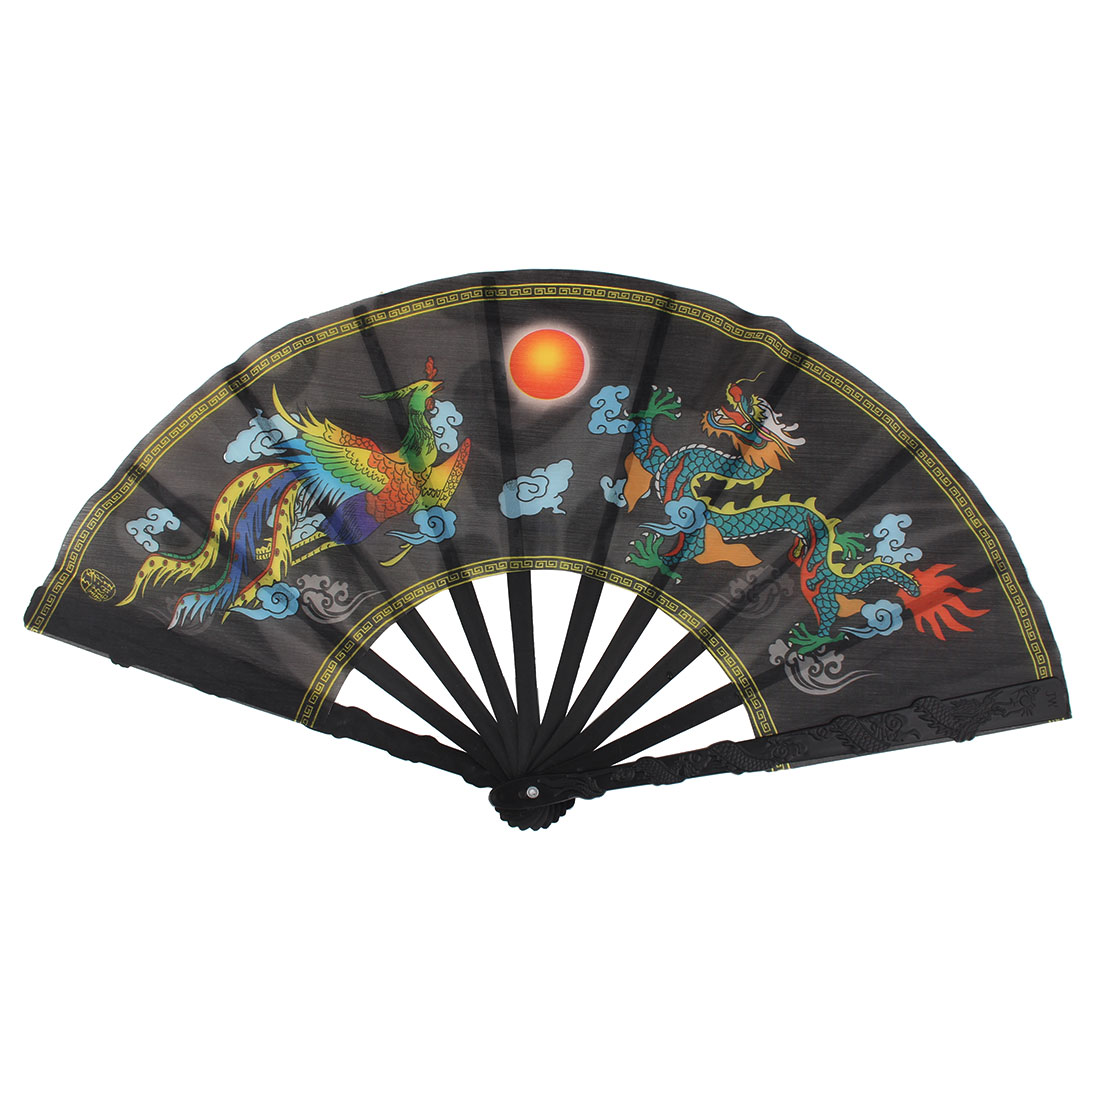 Summer Plastic Ribs Dragon Print Chinese Traditional Style Handheld Folding Fan